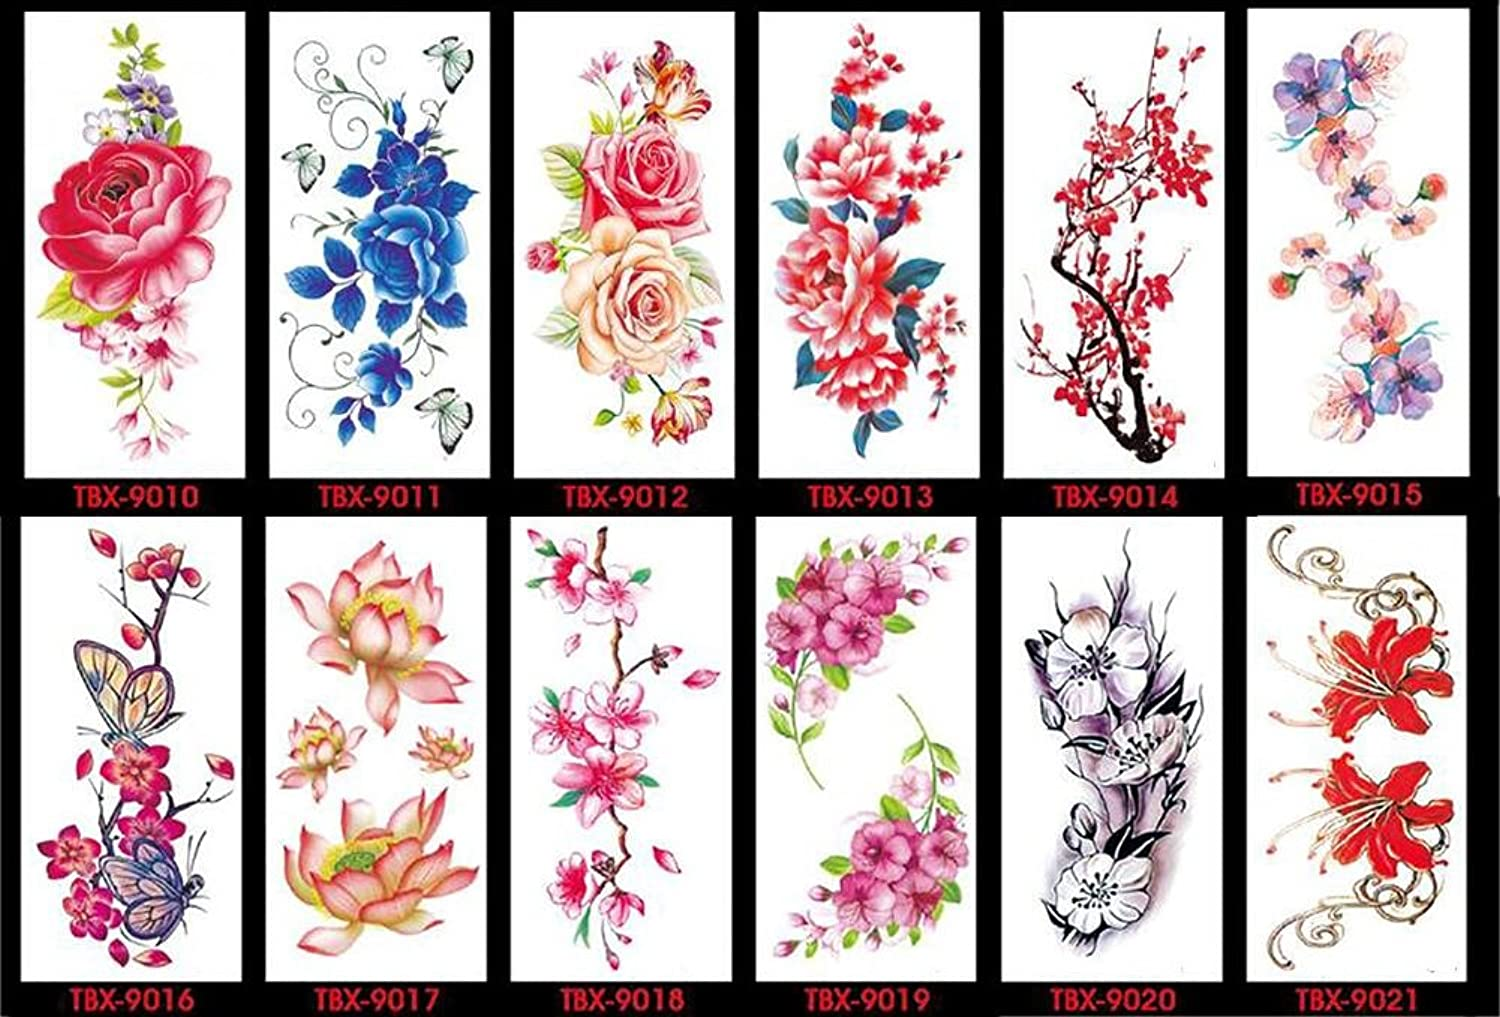 D&F Lady Flower Tattoos Stickers Fashion Body Art Stickers Waterproof Safe And Non-Toxic Unique Design